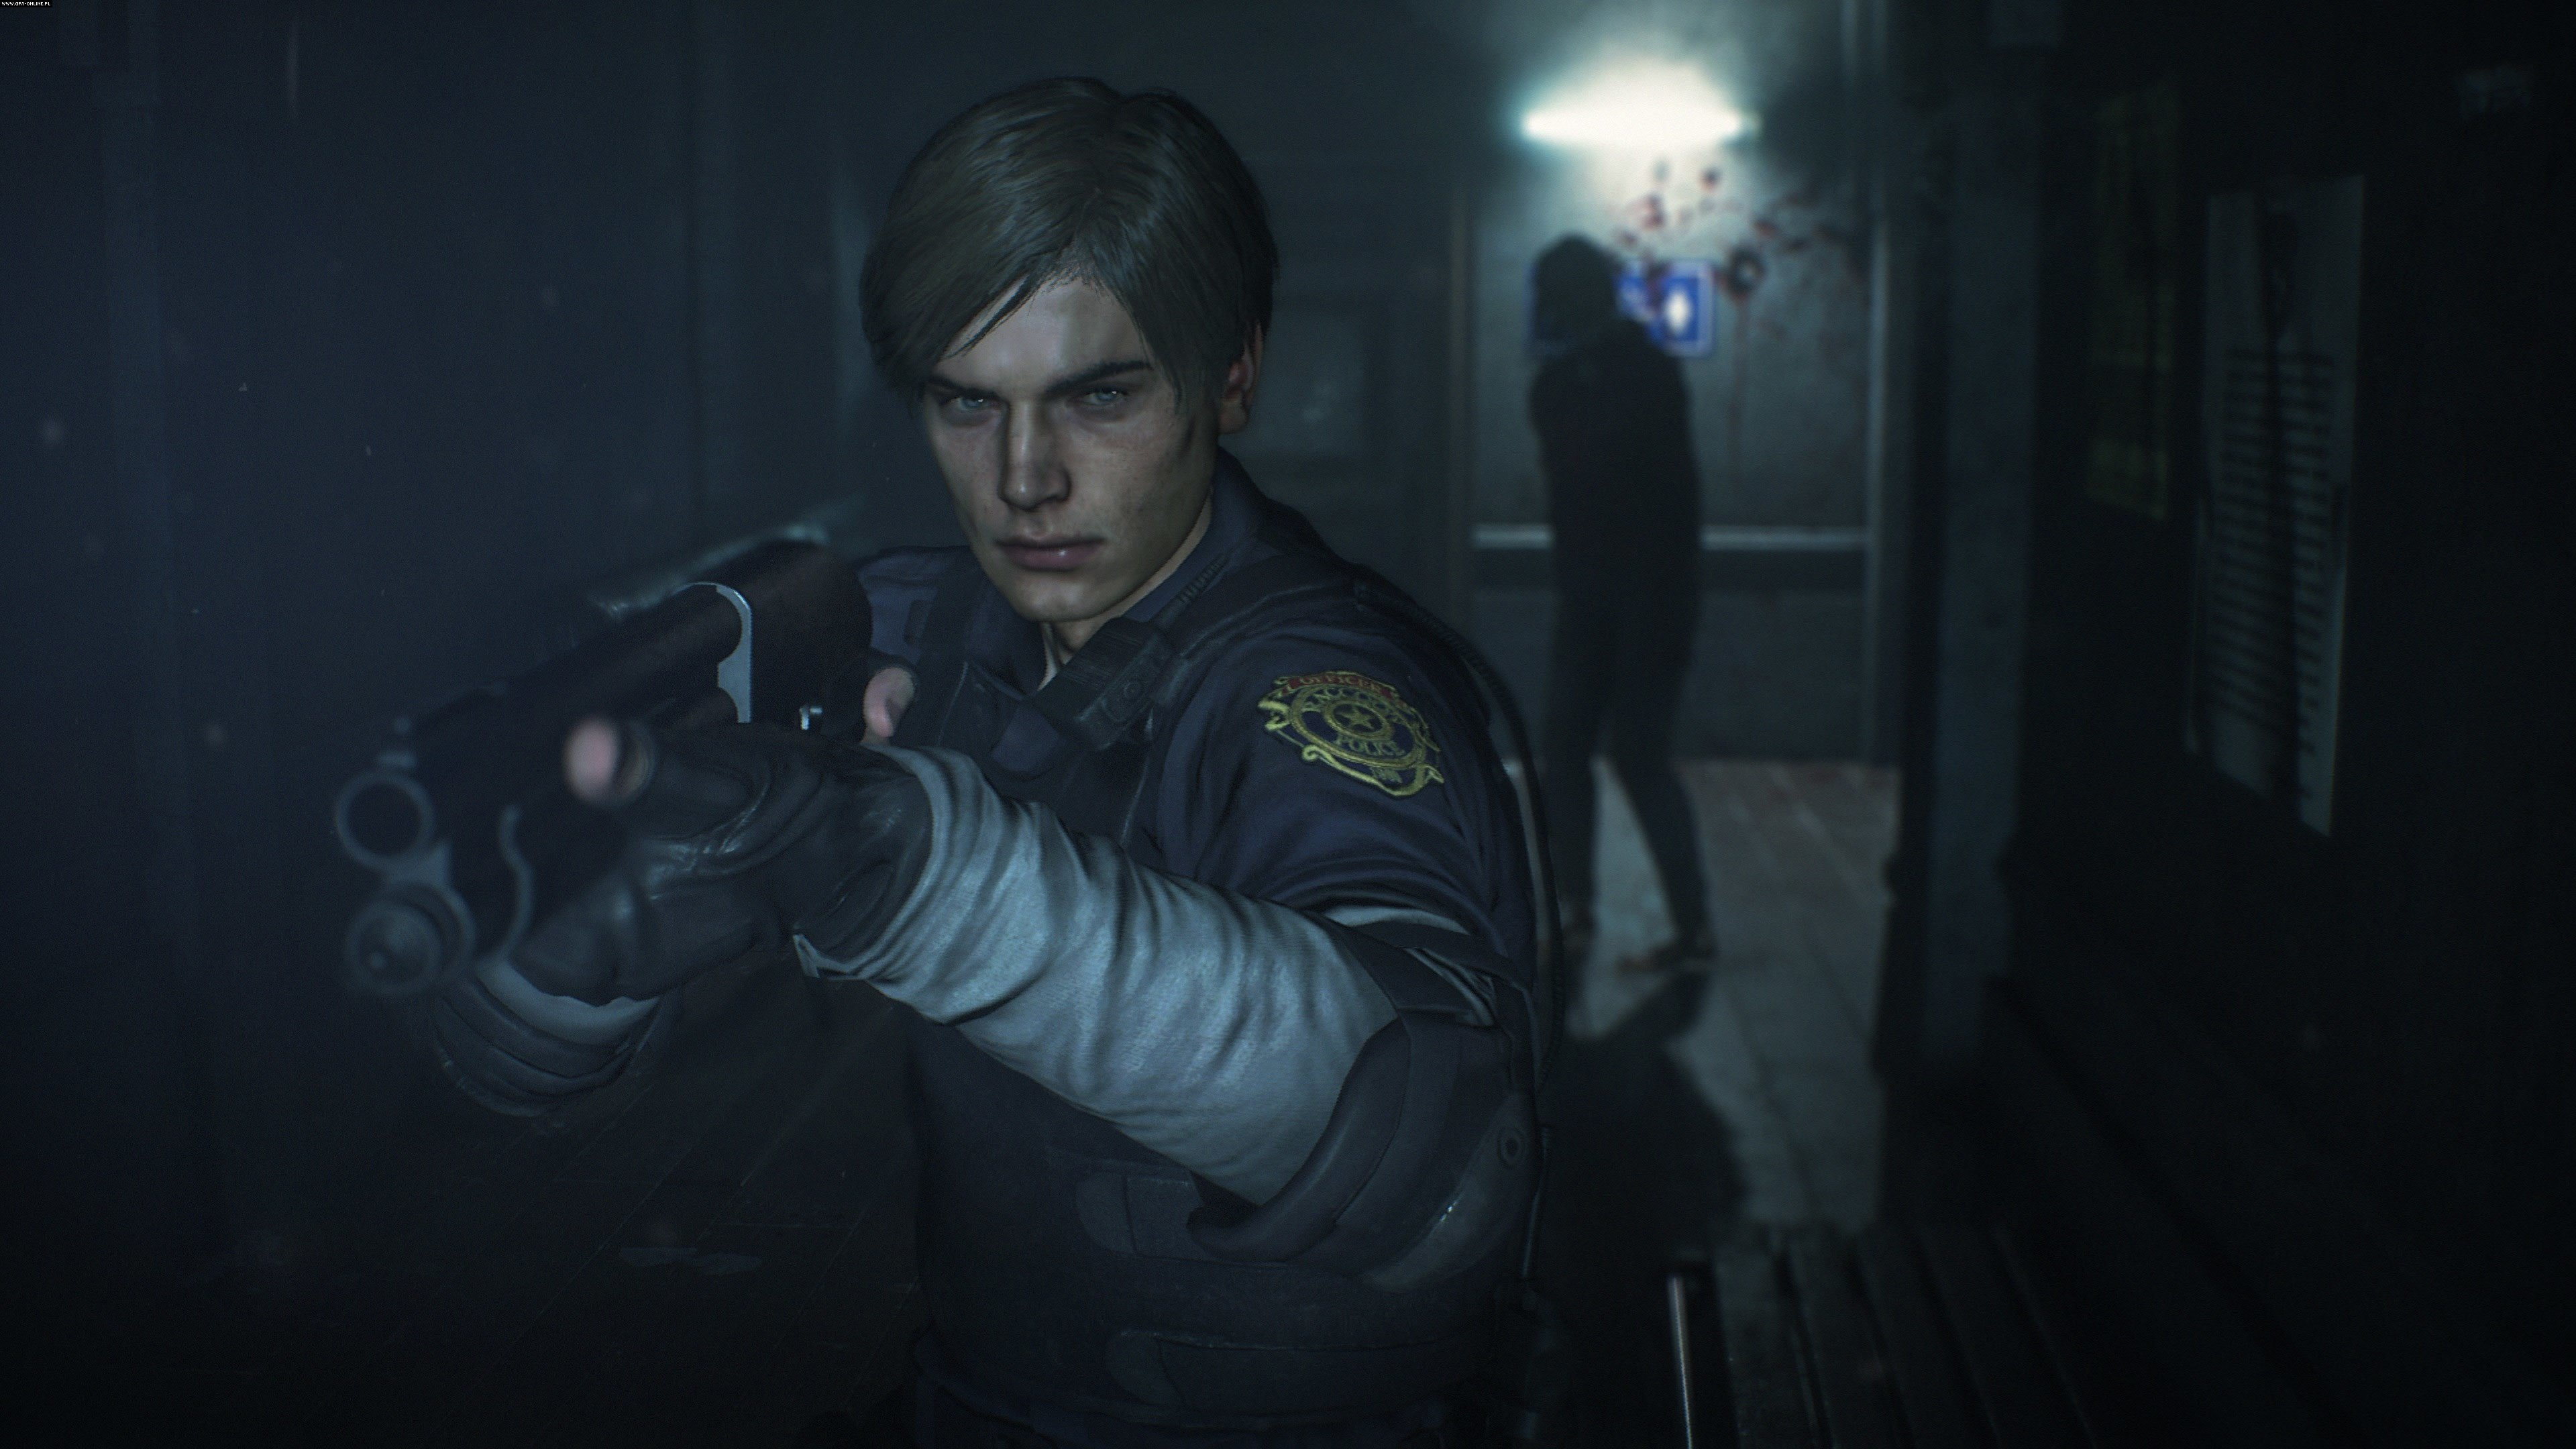 Resident Evil 2 PC, PS4, XONE Gry Screen 40/98, Capcom